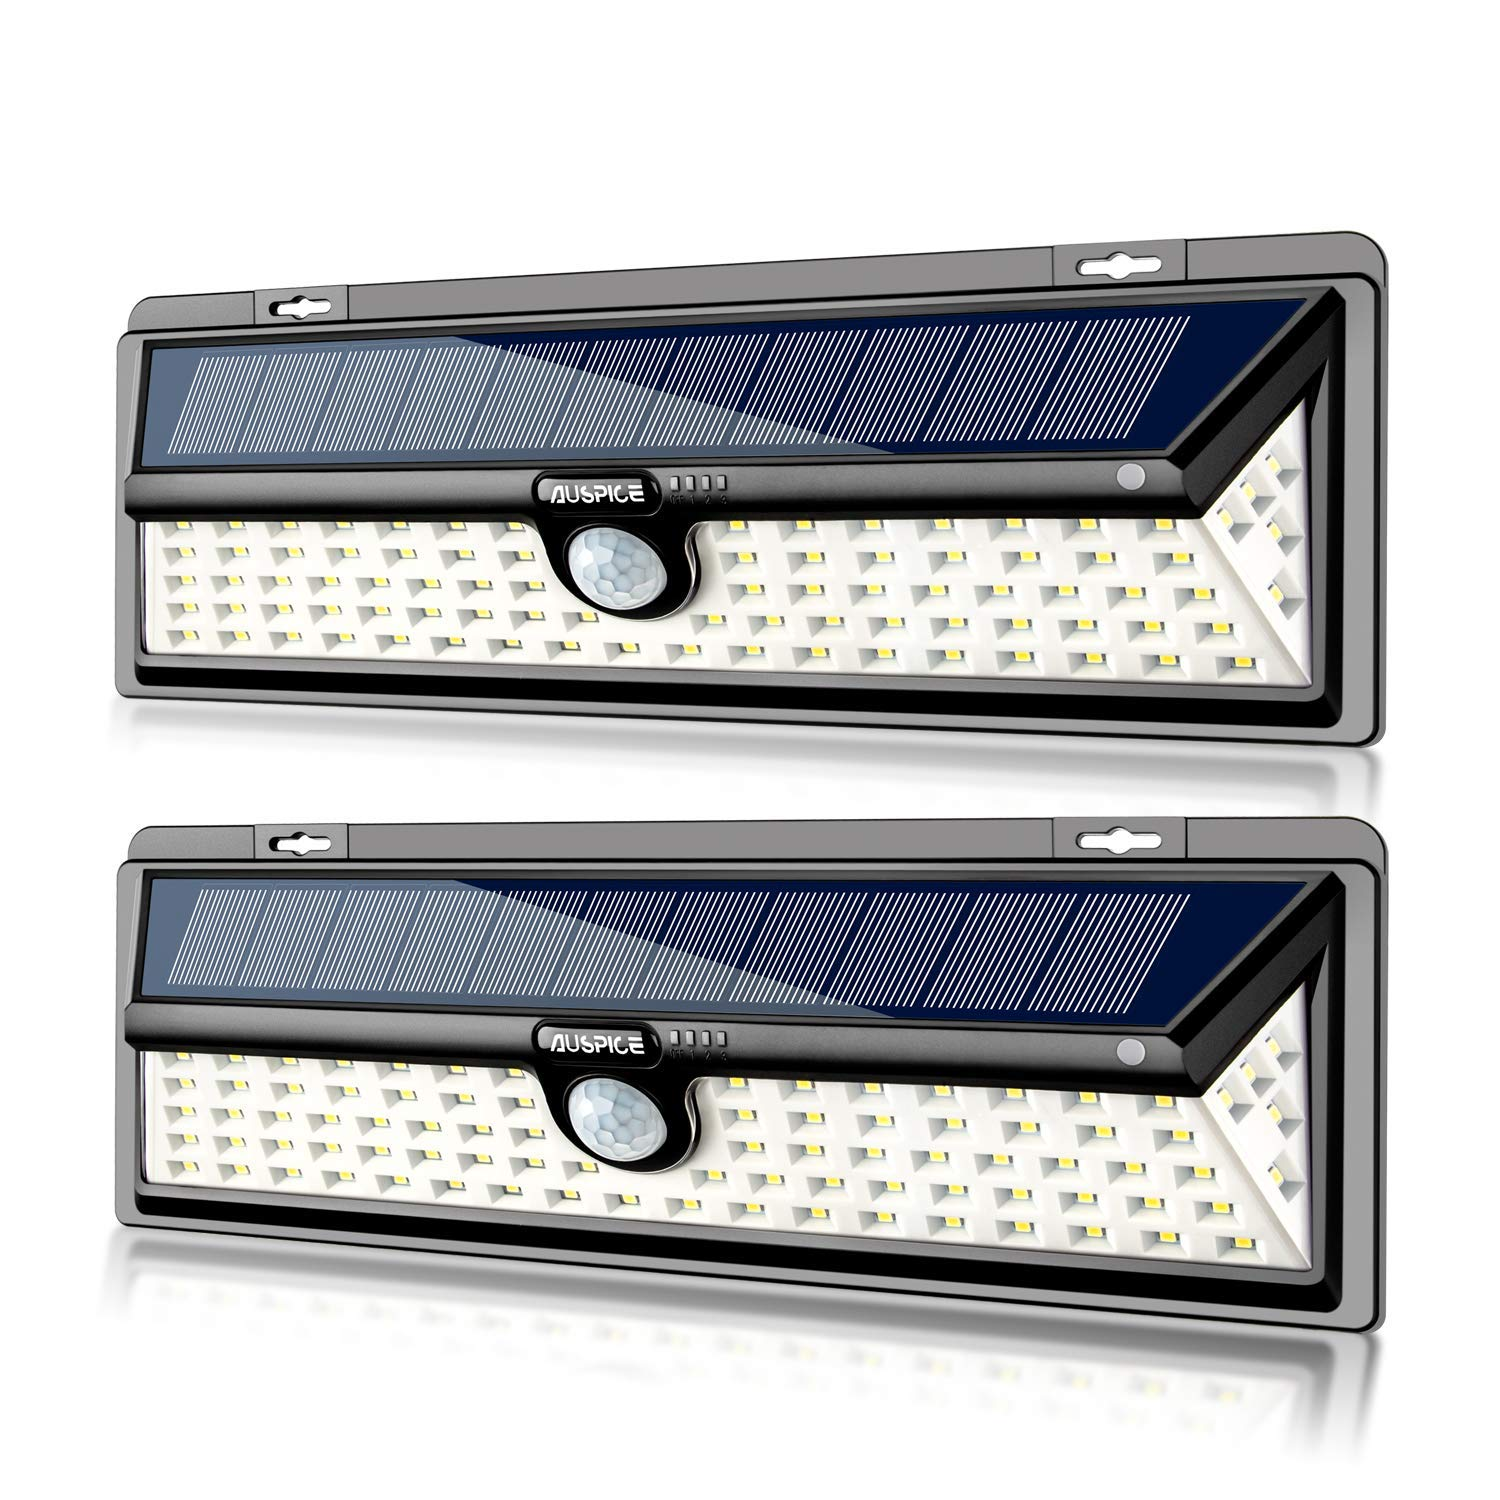 AUSPICE Solar Lights Outdoor, 90 LED 3 Optional Modes Wireless Motion Sensor Light with 270° Wide Angle, IP65 Waterproof, Easy-to-Install Security Lights for Front Door, Yard, Garage, Deck (2 Pack)